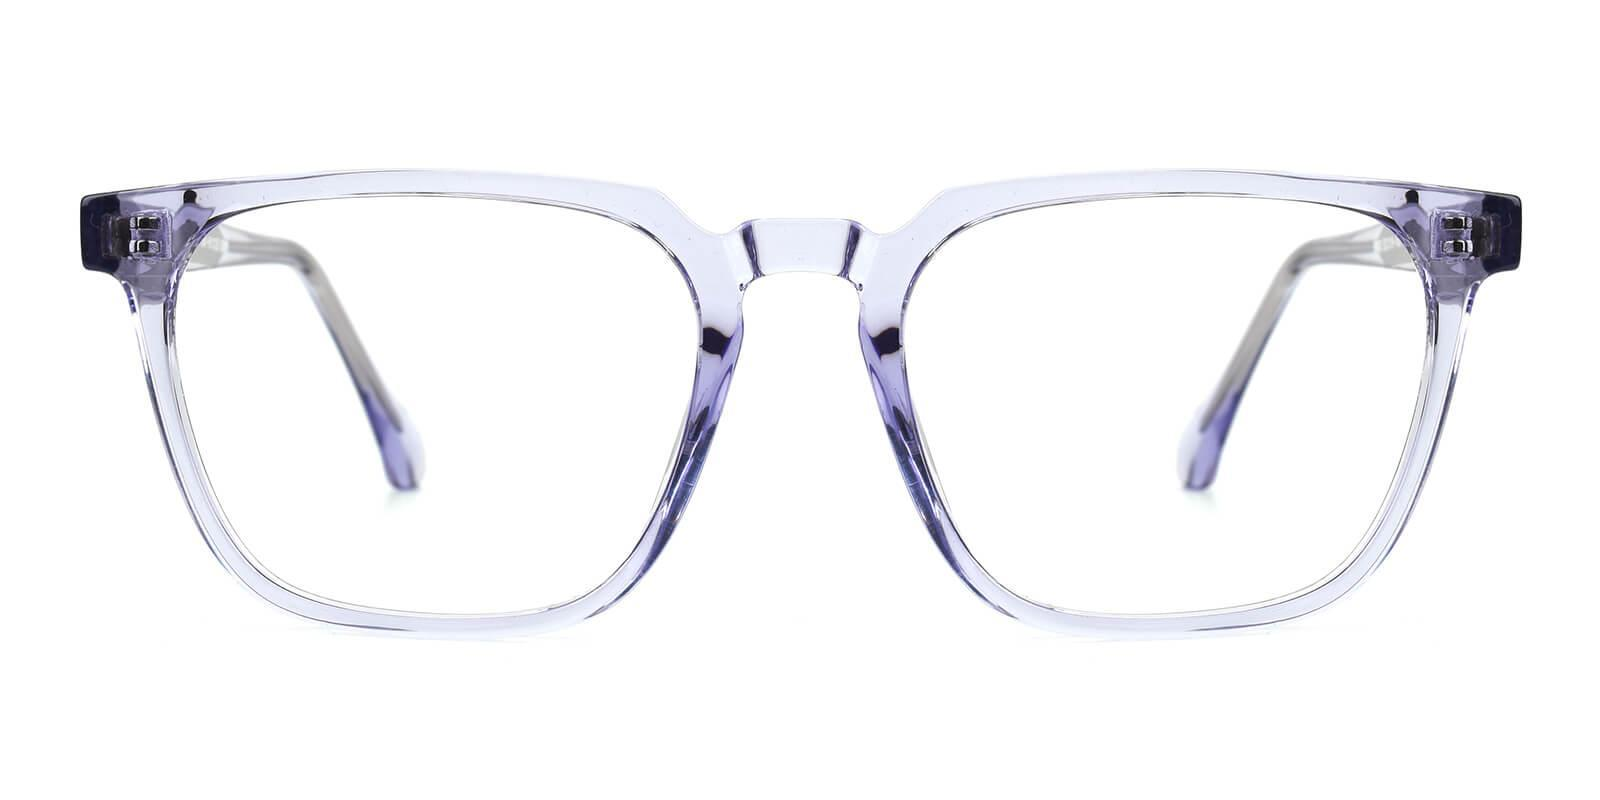 Oriana Purple Acetate Eyeglasses , SpringHinges , UniversalBridgeFit Frames from ABBE Glasses